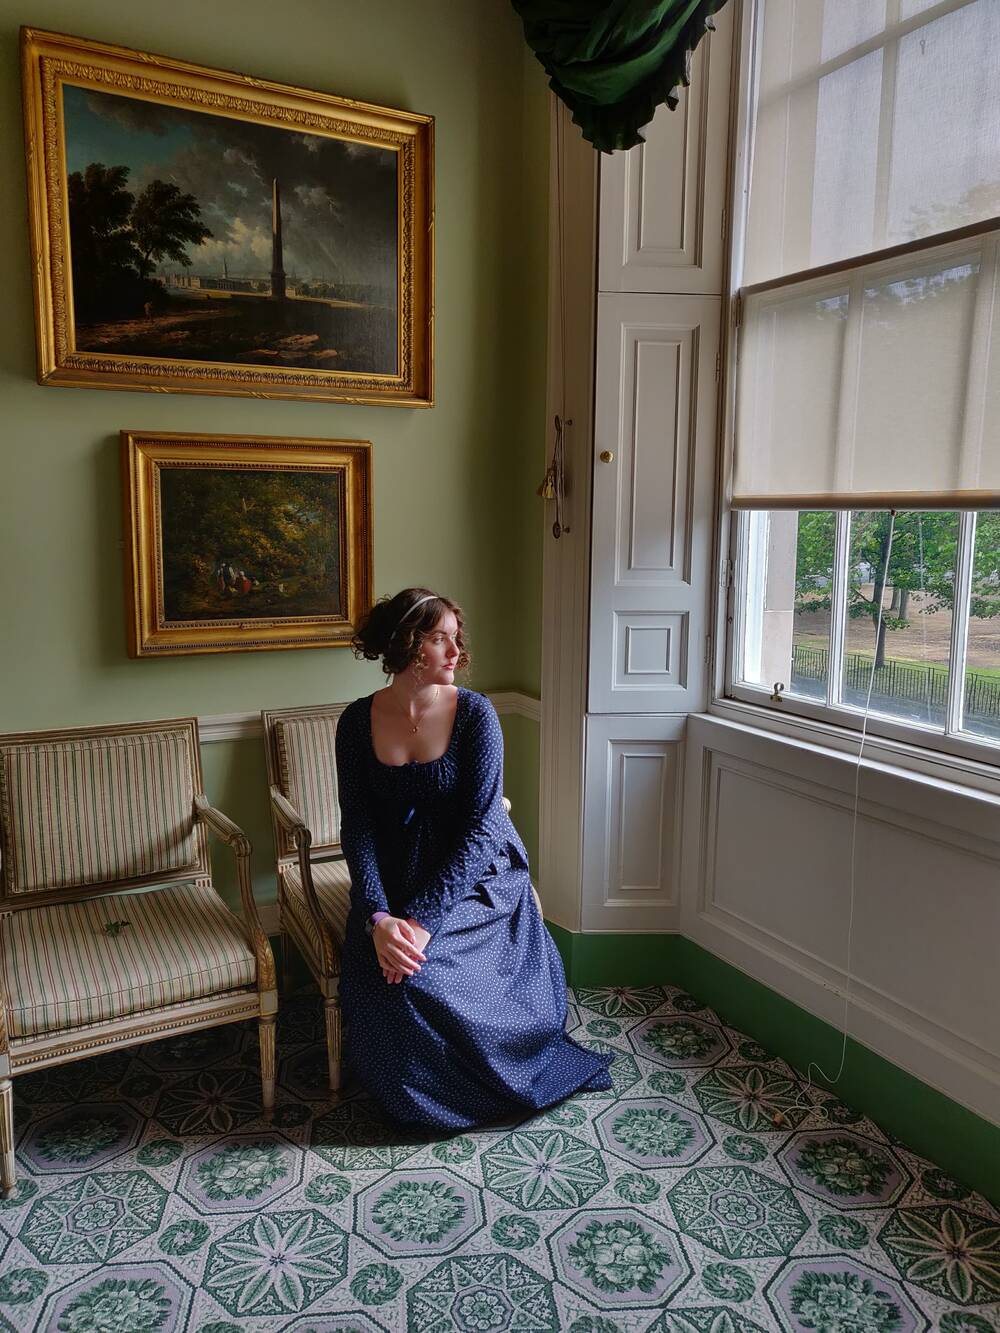 A lady sits in a chair and models a 1800s-style gown as she looks out of the window of a Georgian drawing room.